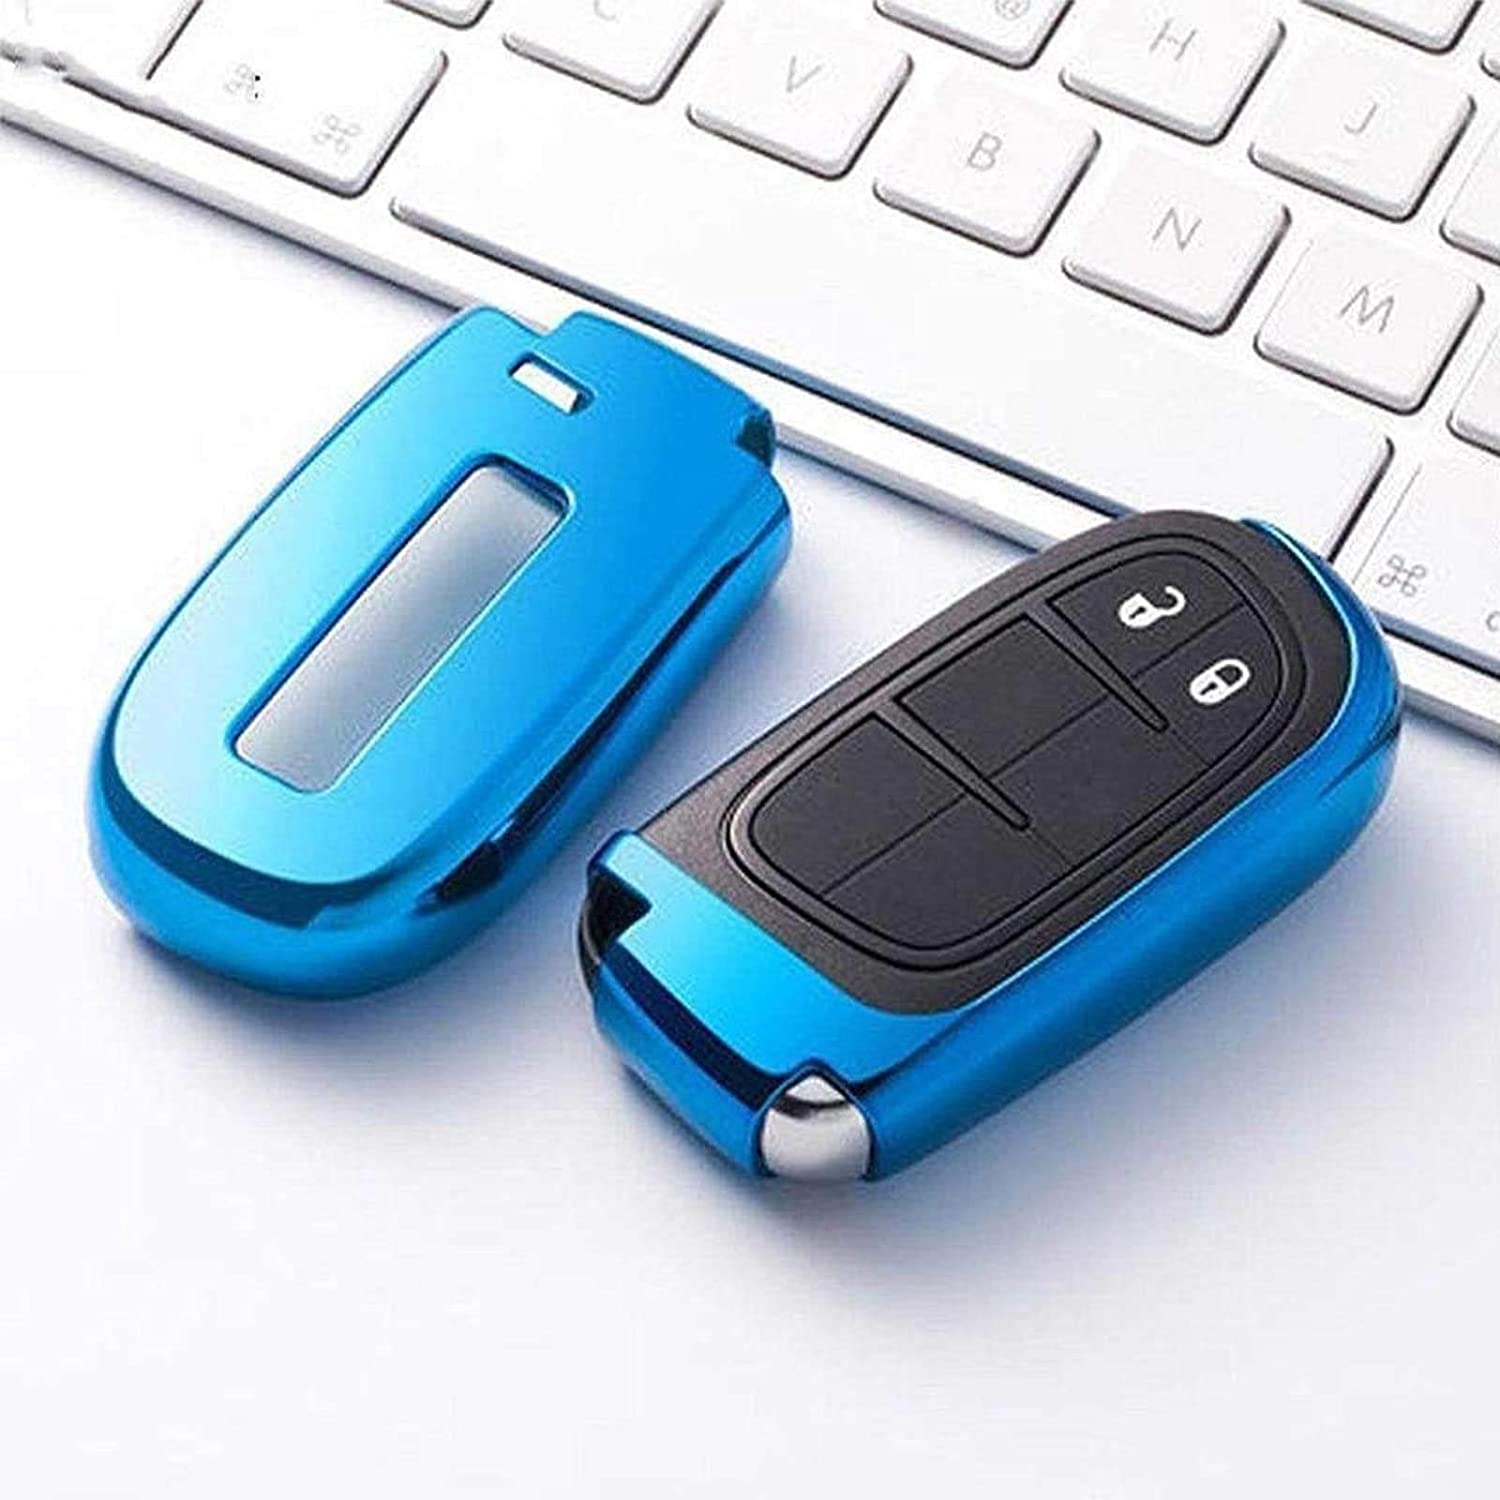 Xotic Tech TPU Soft Remote Key Fob Cover with Braided Keychain for Jeep Chrysler Dodge,Glossy Blue Xotic Tech Direct